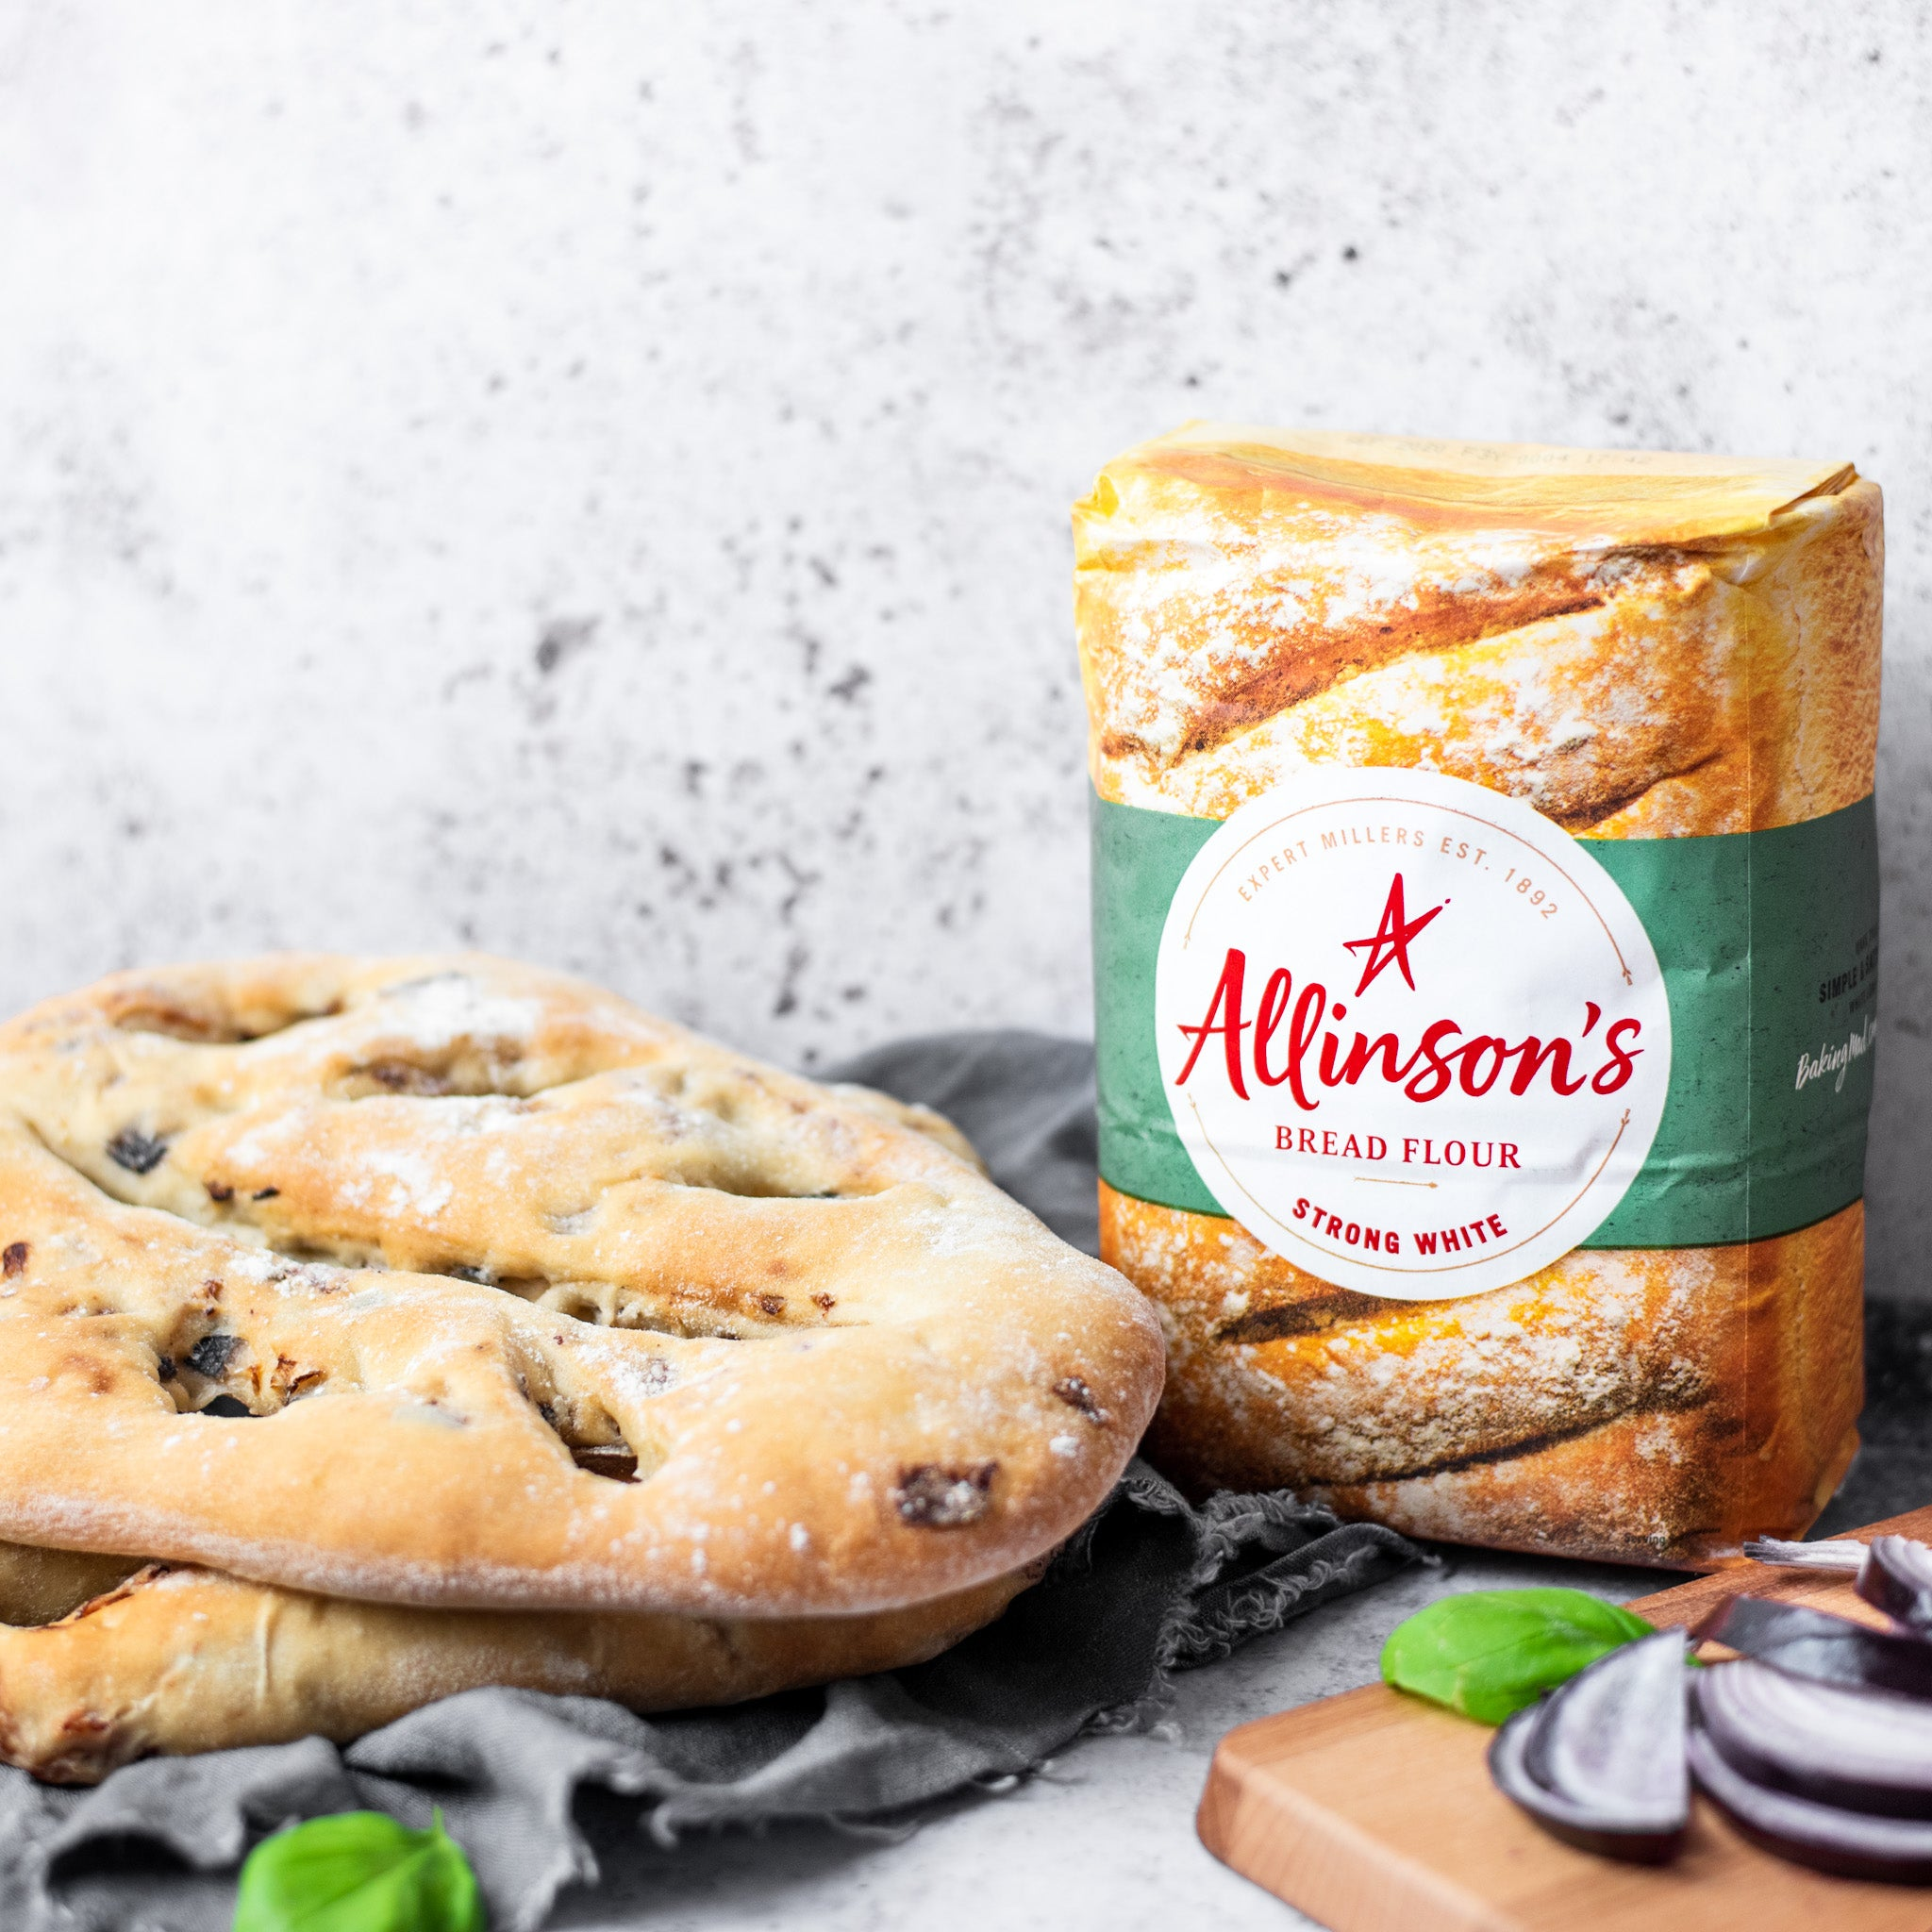 Allinsons-Fougasse-1-1-Baking-Mad-8.jpg